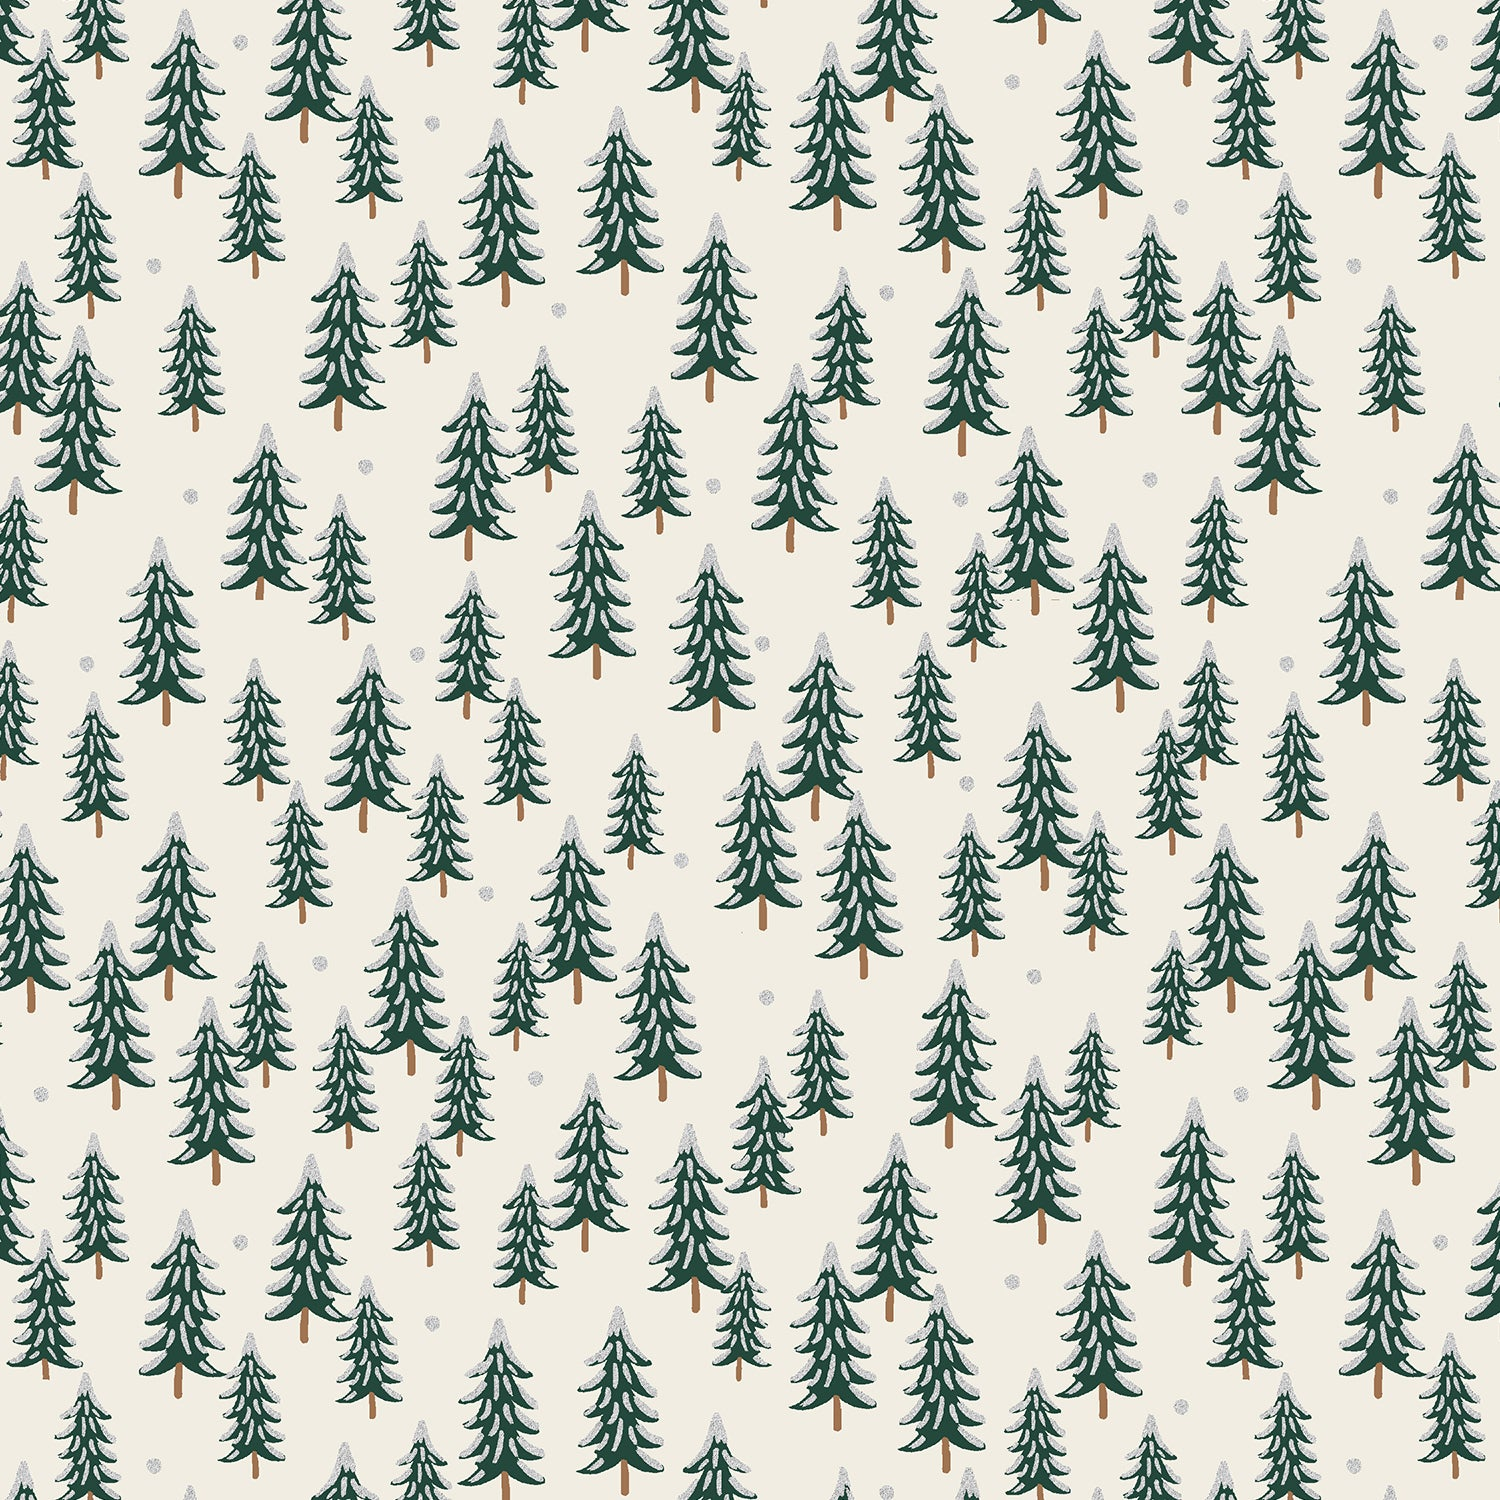 Holiday Classics - Fir Trees - Silver Metallic